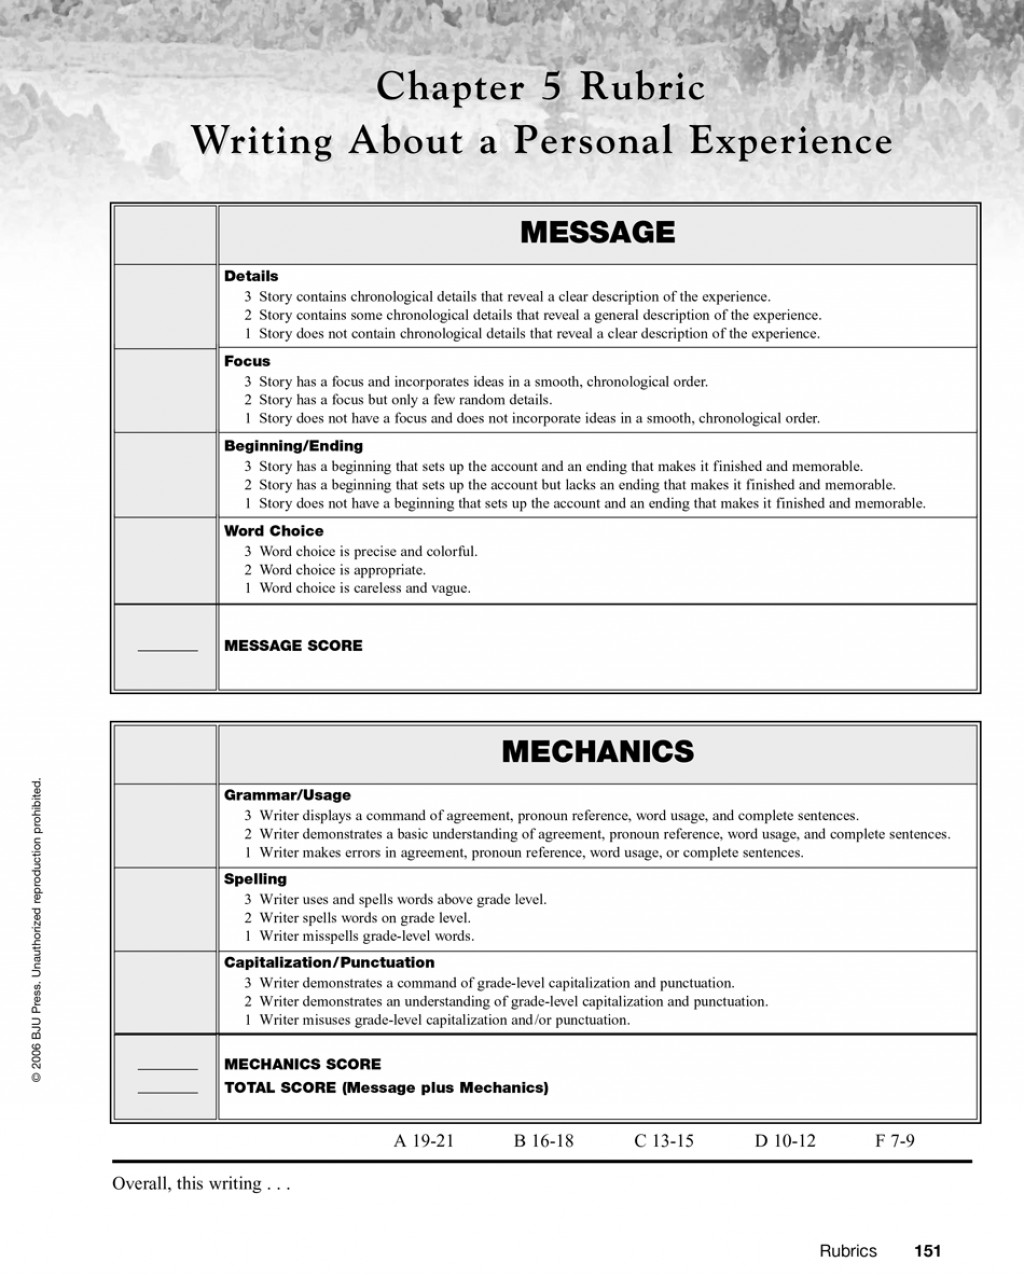 013 Essay Example Writingrubrics 5950w Grading Unbelievable Rubric Sat Act College Application Large